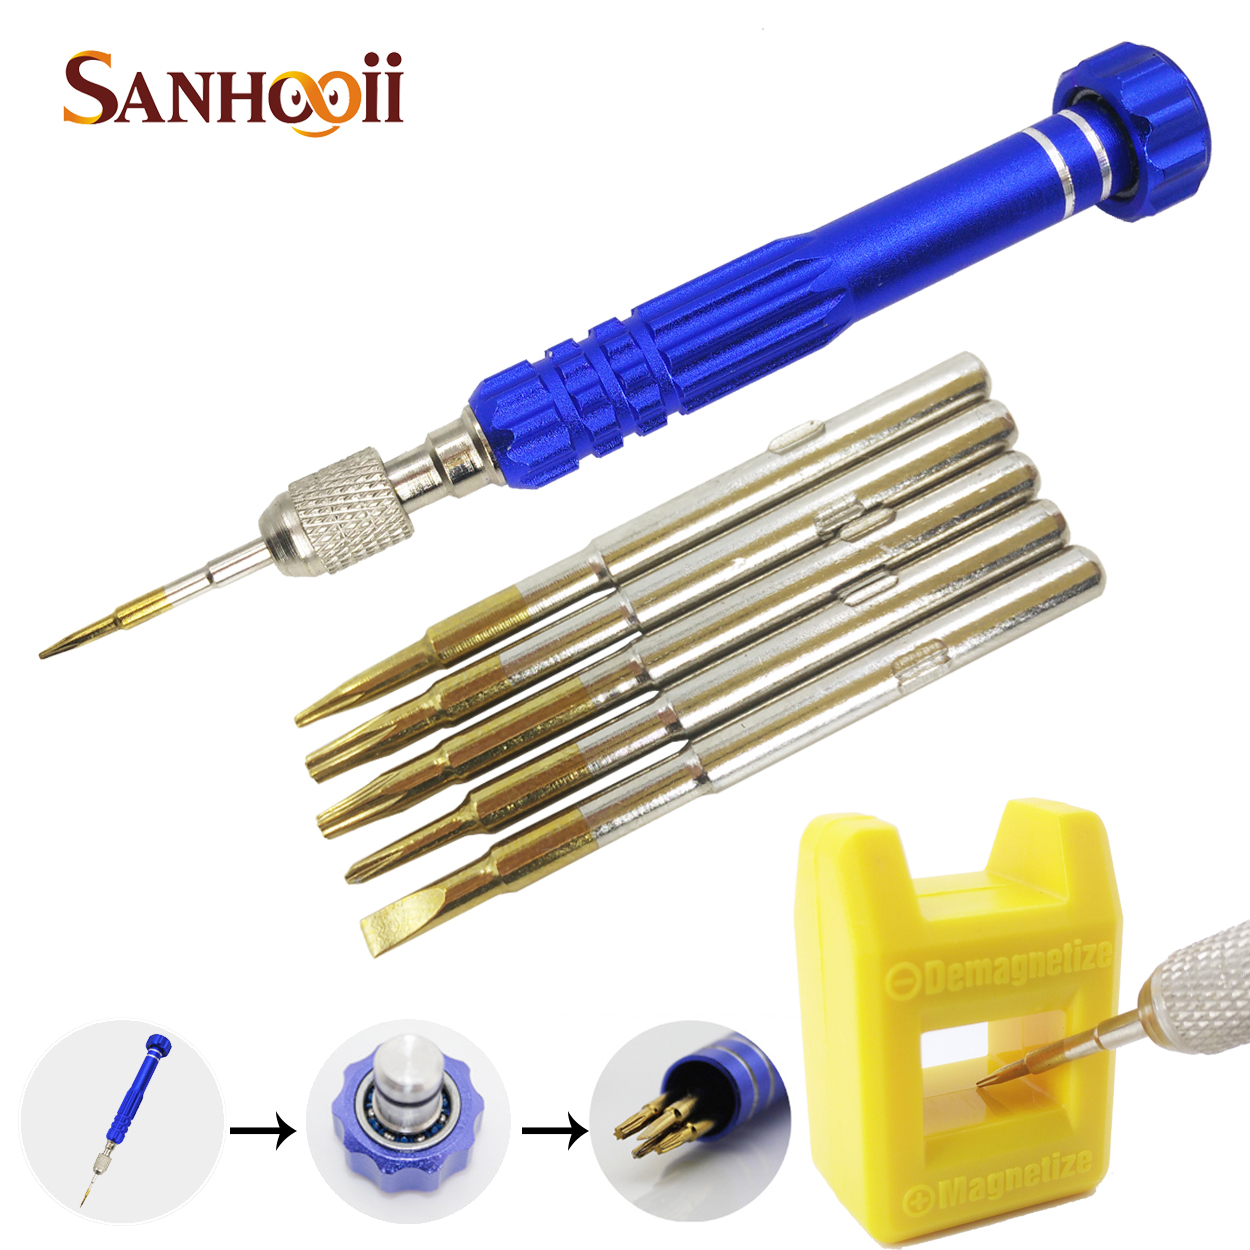 6in1 Pentalobe Repair Alloy Steel Opening Tools Screwdrivers Kit Magnetizer Demagnetizer For iPhone 4s 5 5s 6 Samsung Galaxy(China (Mainland))